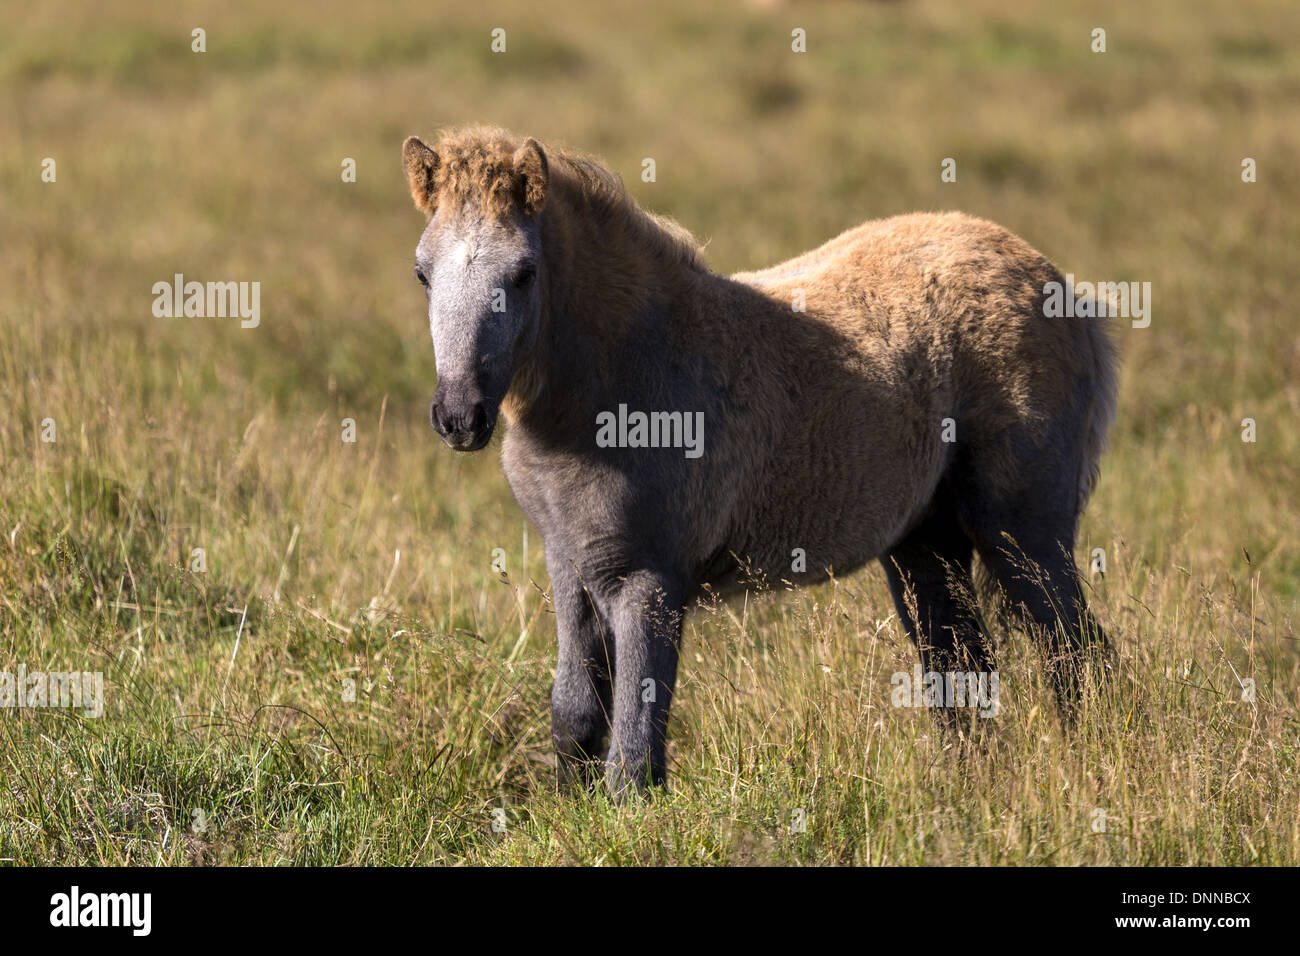 The Icelandic horse is a small breed of horse that has evolved in isolation in Iceland. - Stock Image